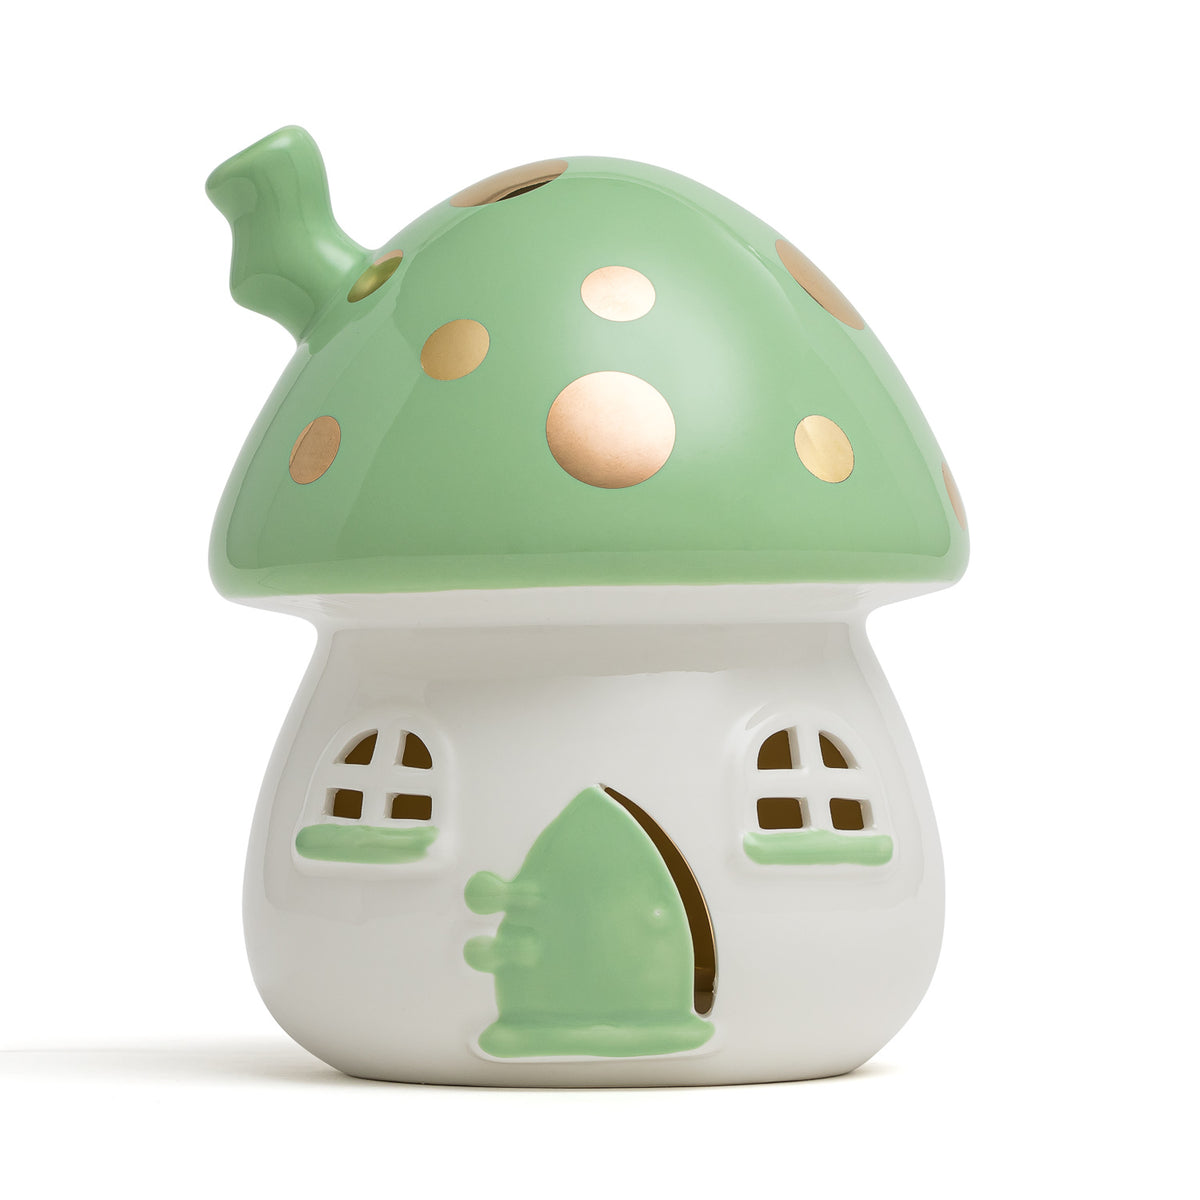 Fairy House Nightlight - Mint |Plug-in|